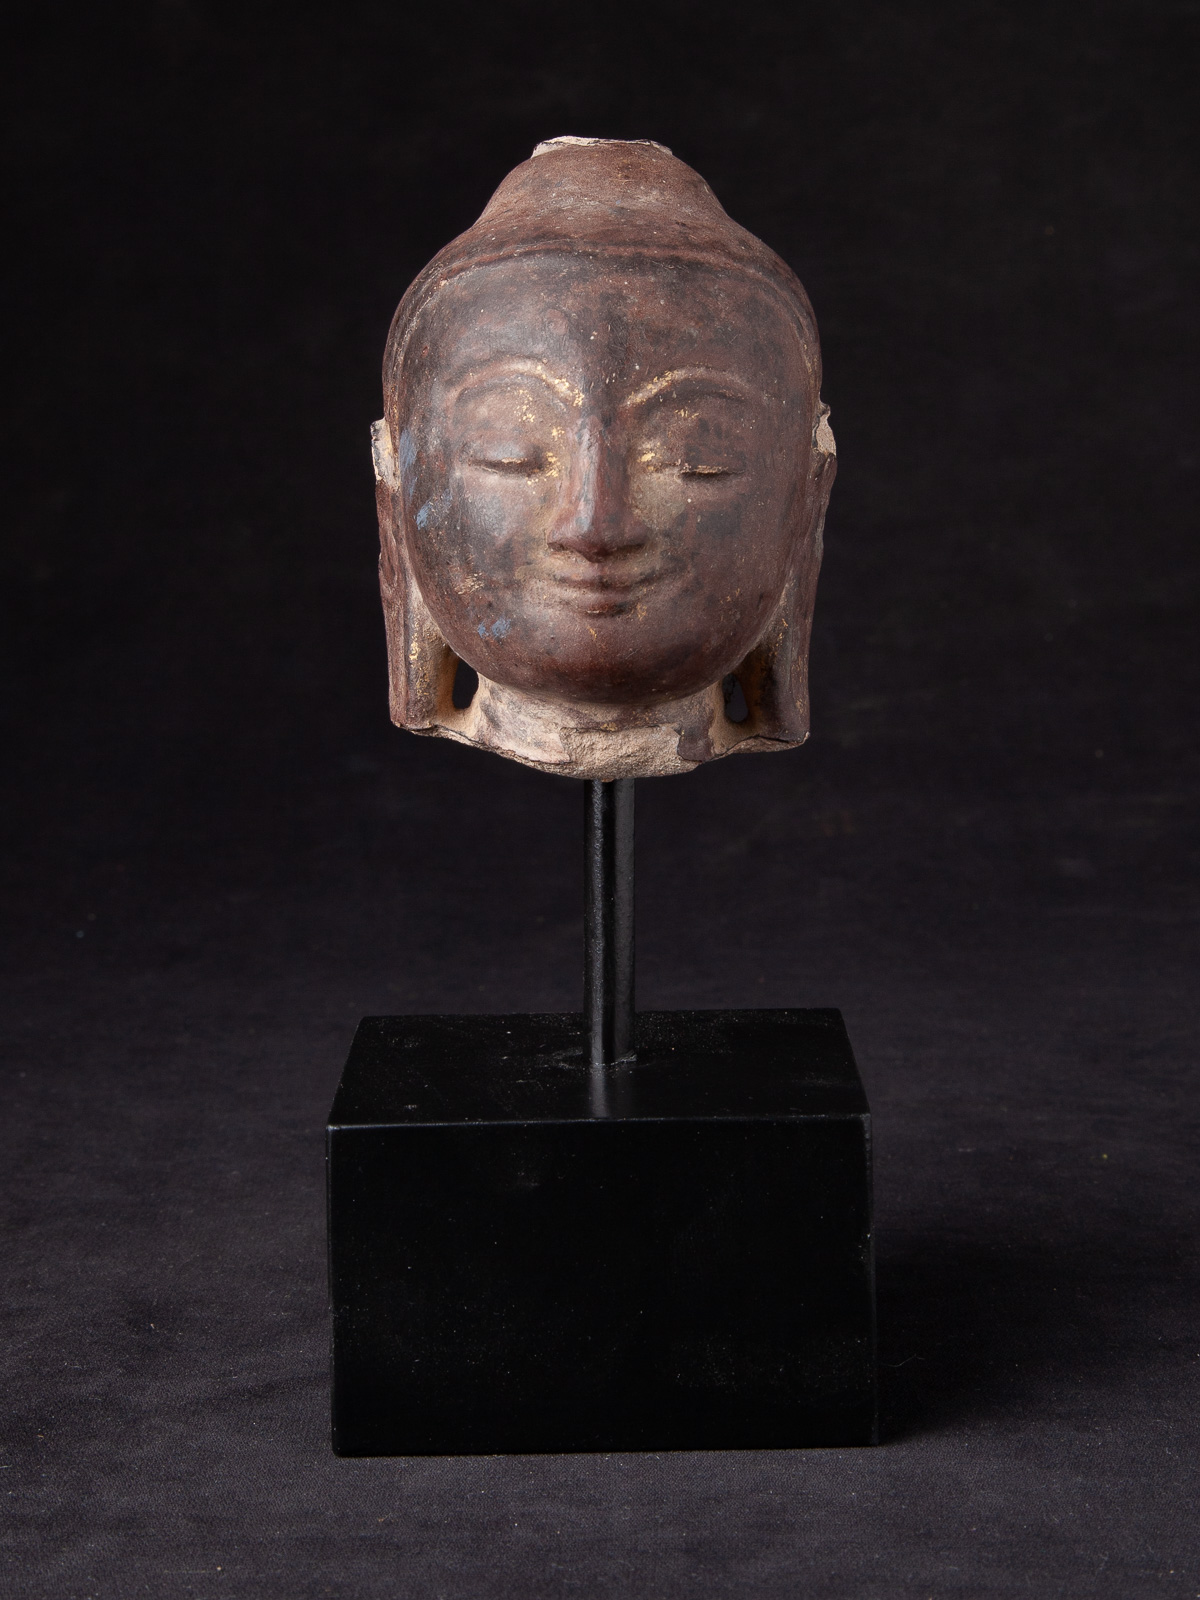 Antique sandstone Buddha head from Burma